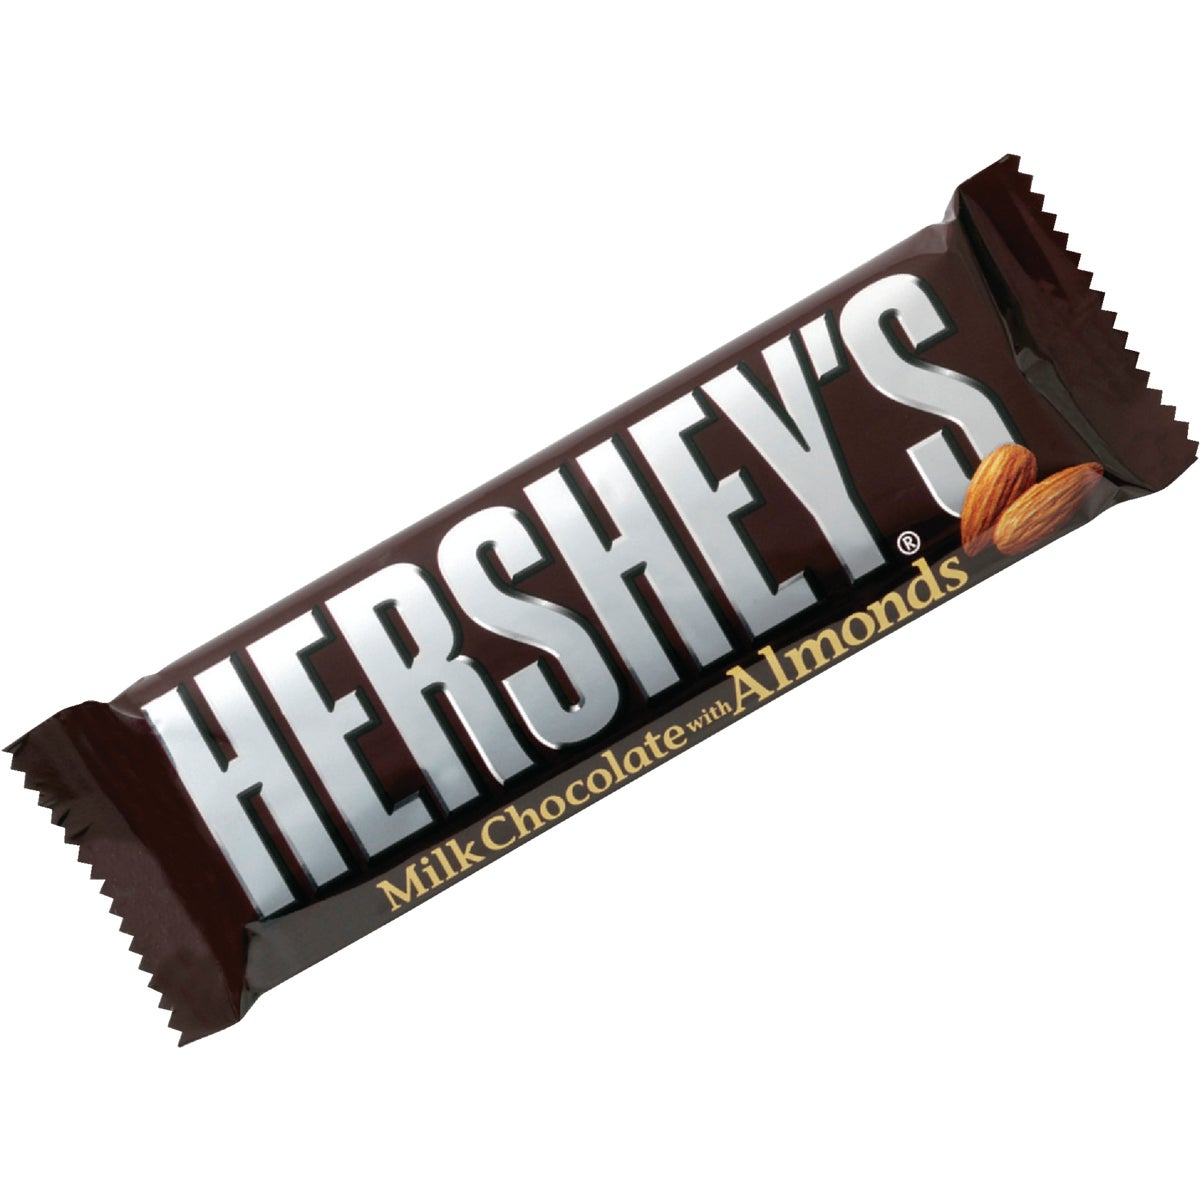 HERSHEY ALMOND BAR